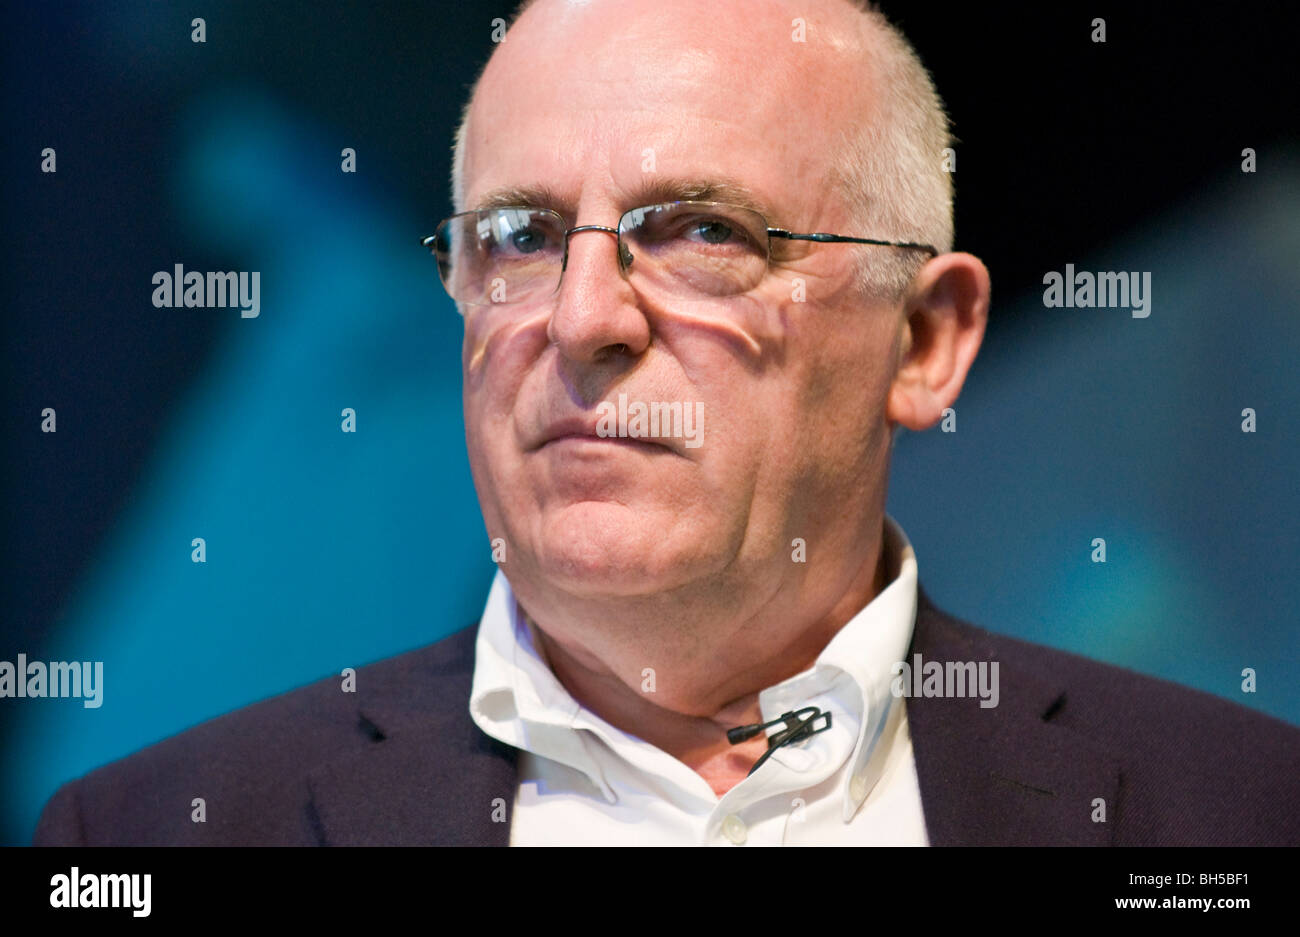 Sir Richard Dearlove former Chief of the British Secret Intelligence Service MI6 pictured at Hay Festival 2009. Stock Photo